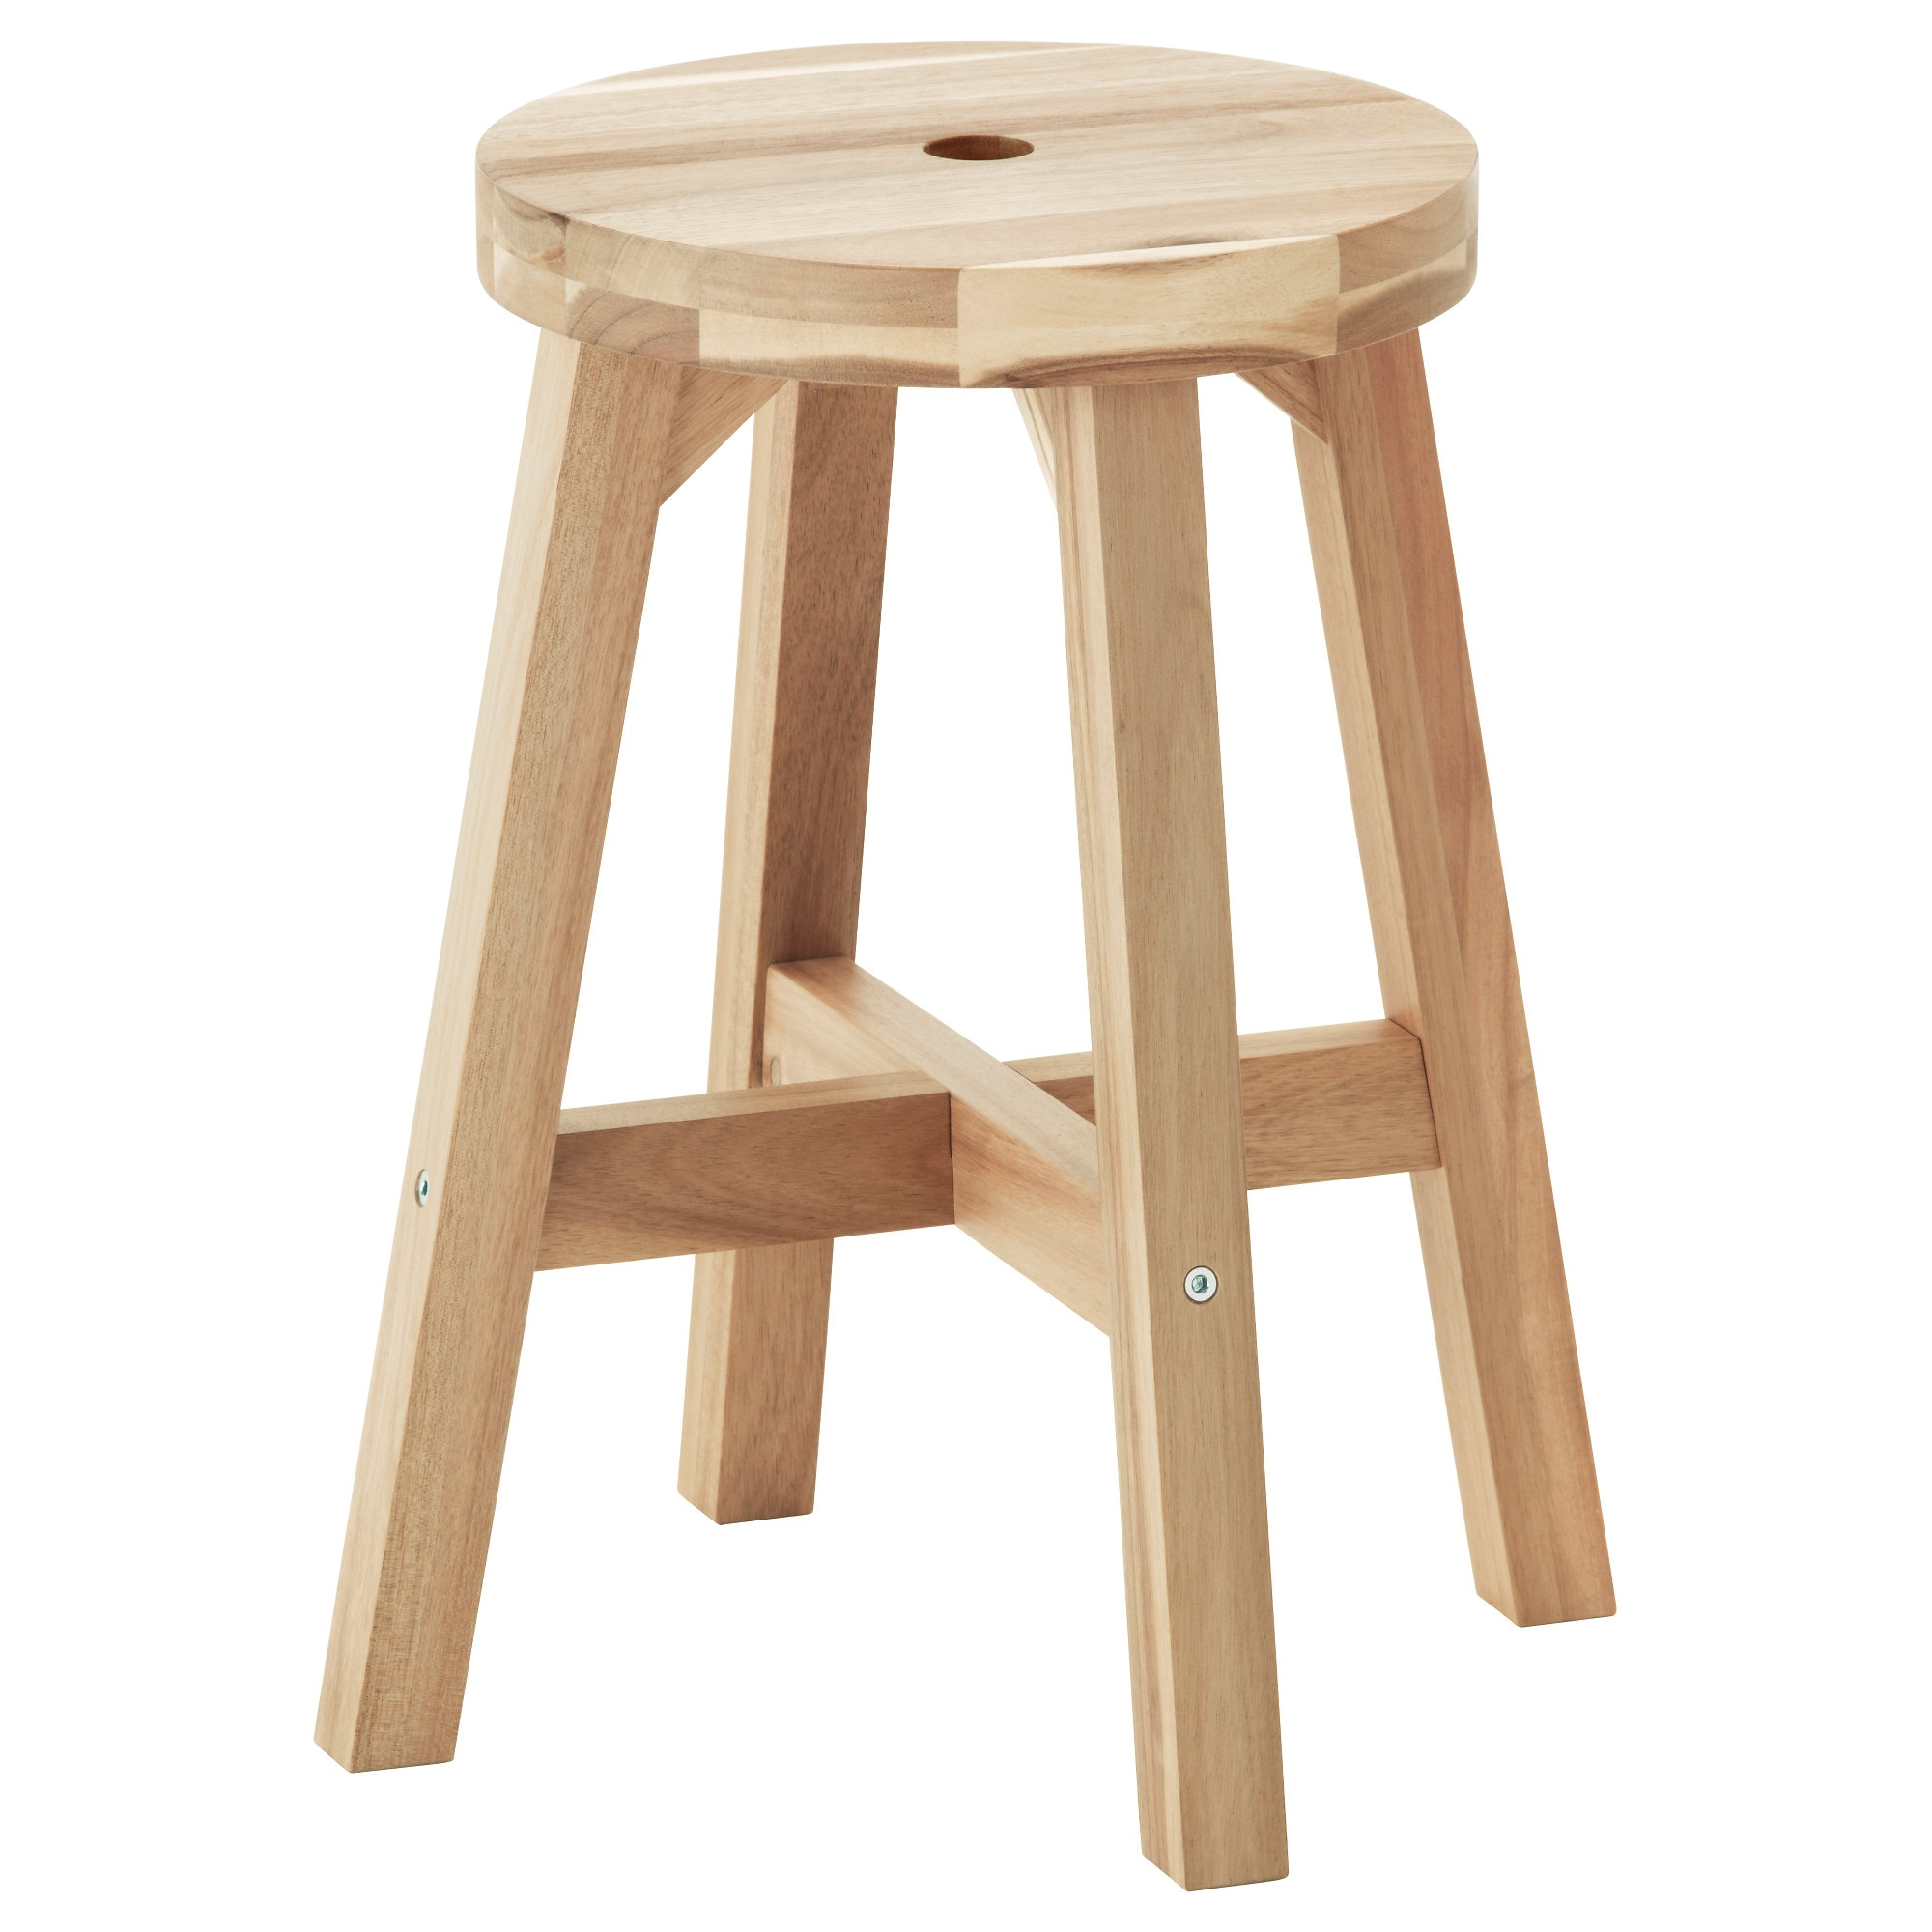 Captivating SKOGSTA Stool   IKEA